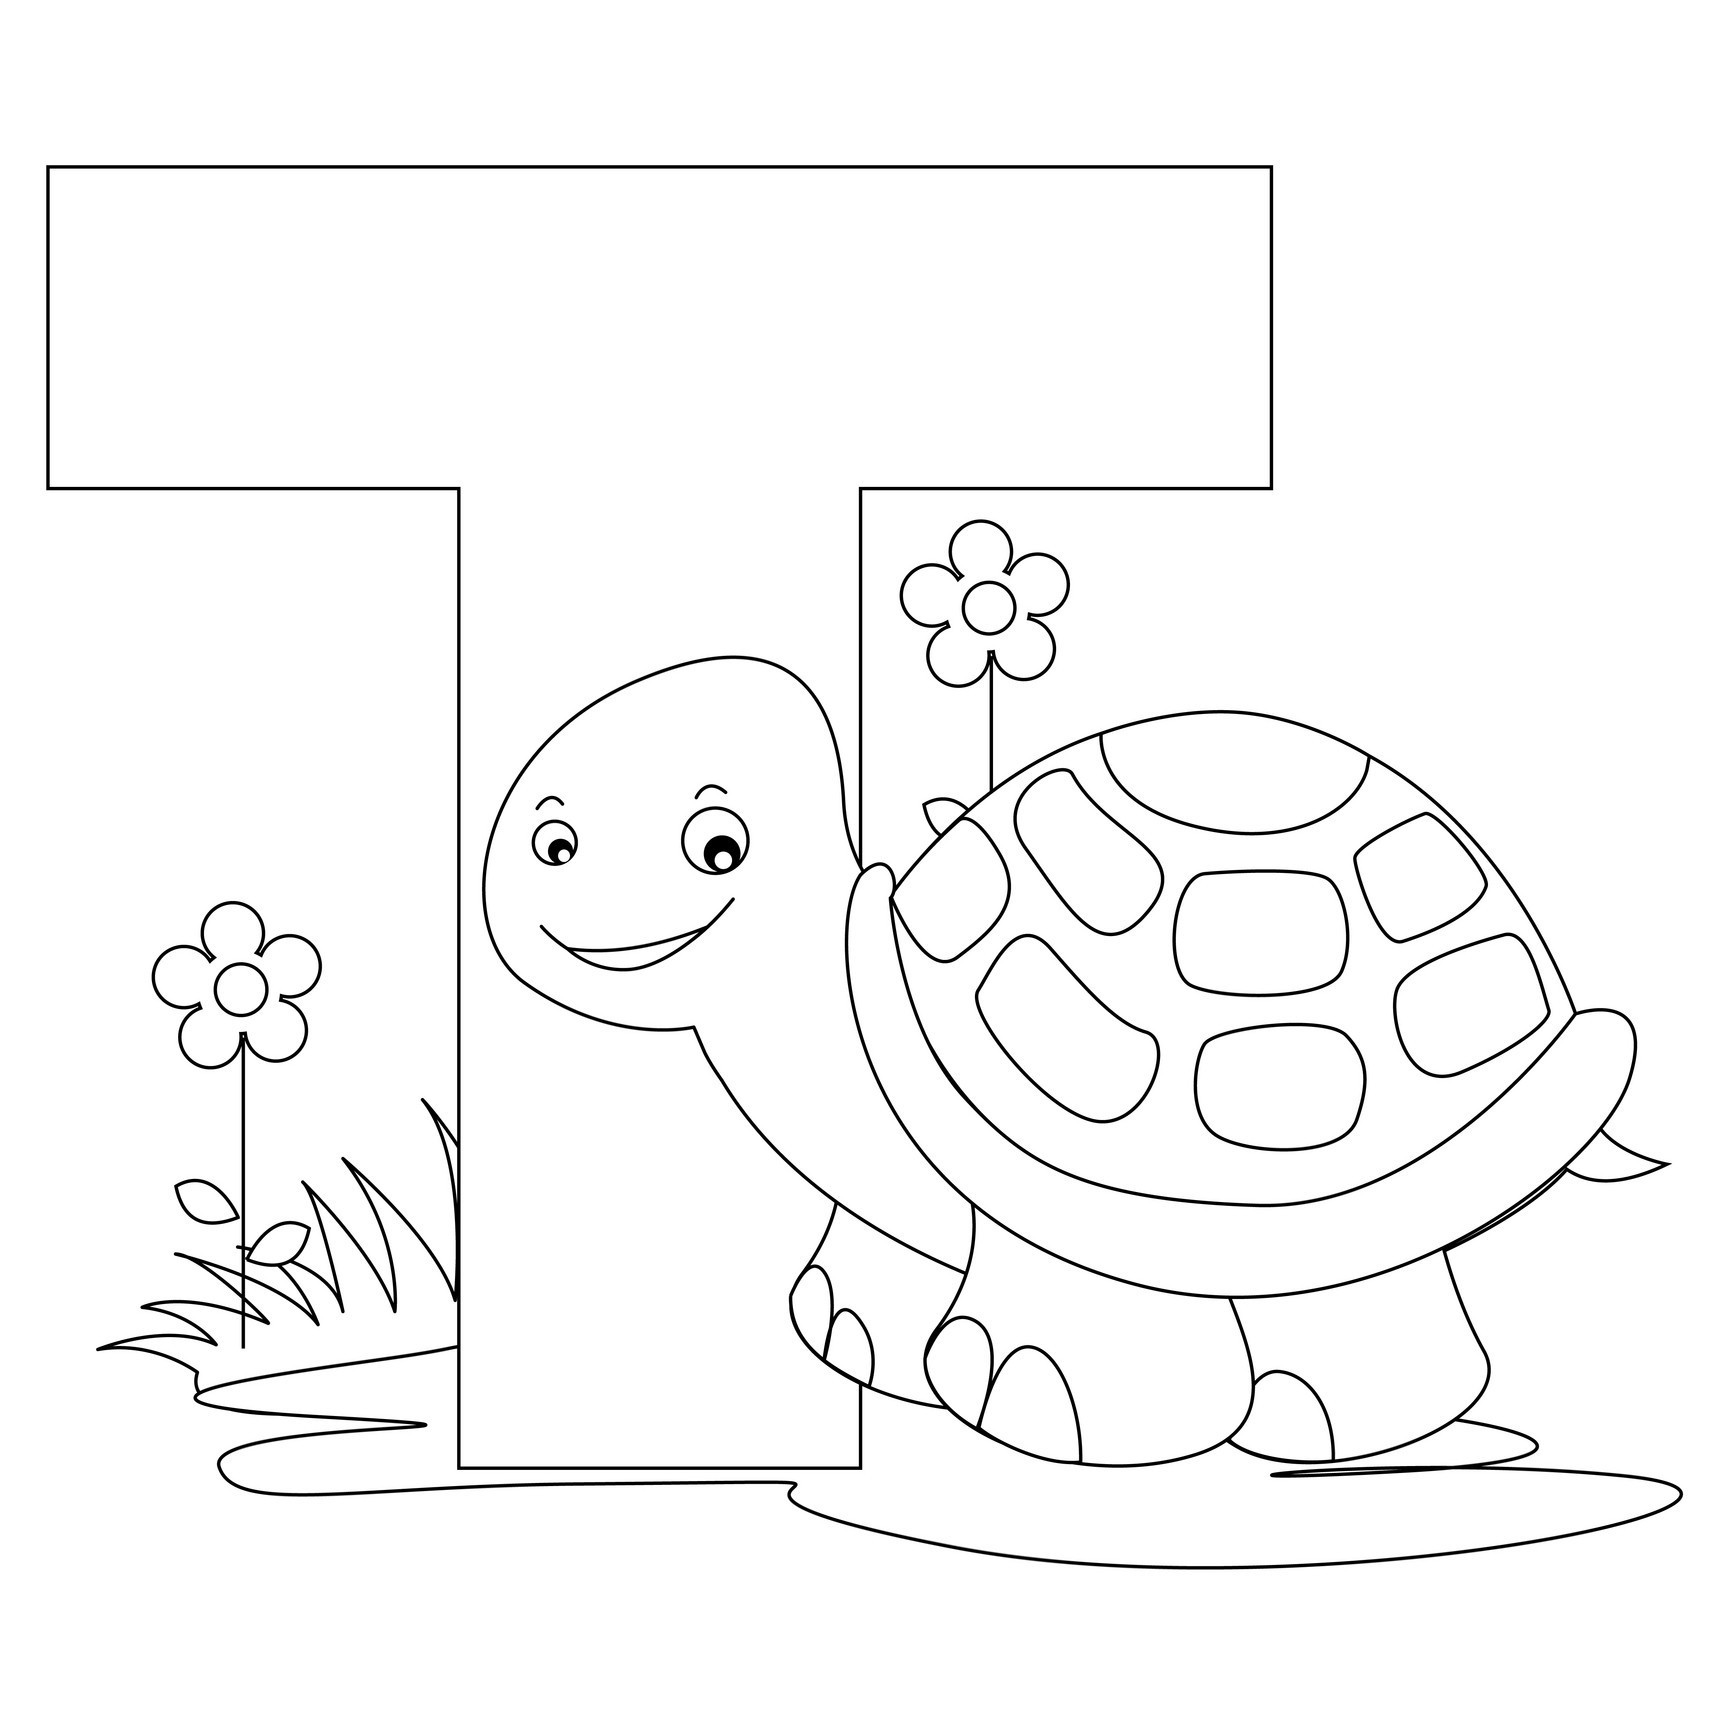 T Coloring Pages For Kids  Free Printable Alphabet Coloring Pages for Kids Best